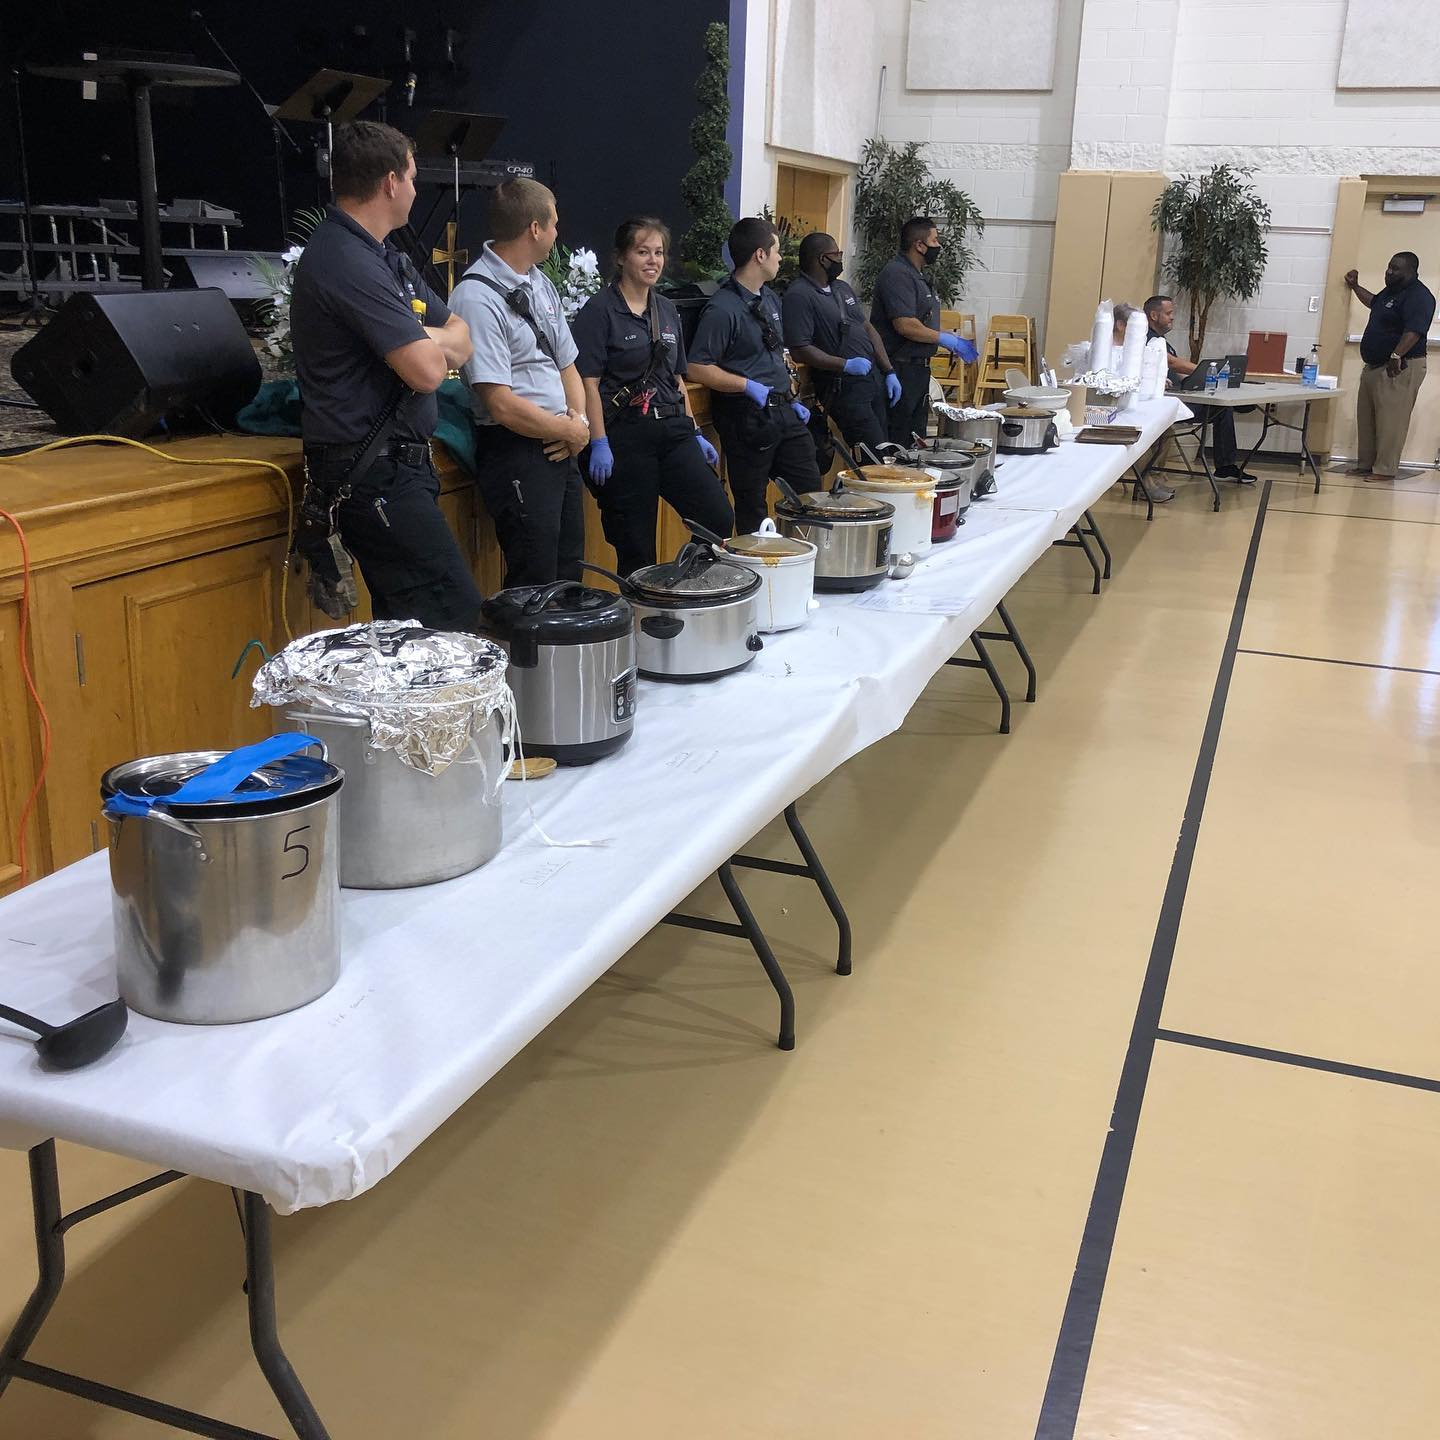 Chili Cook Off For United Way Of Pitt County